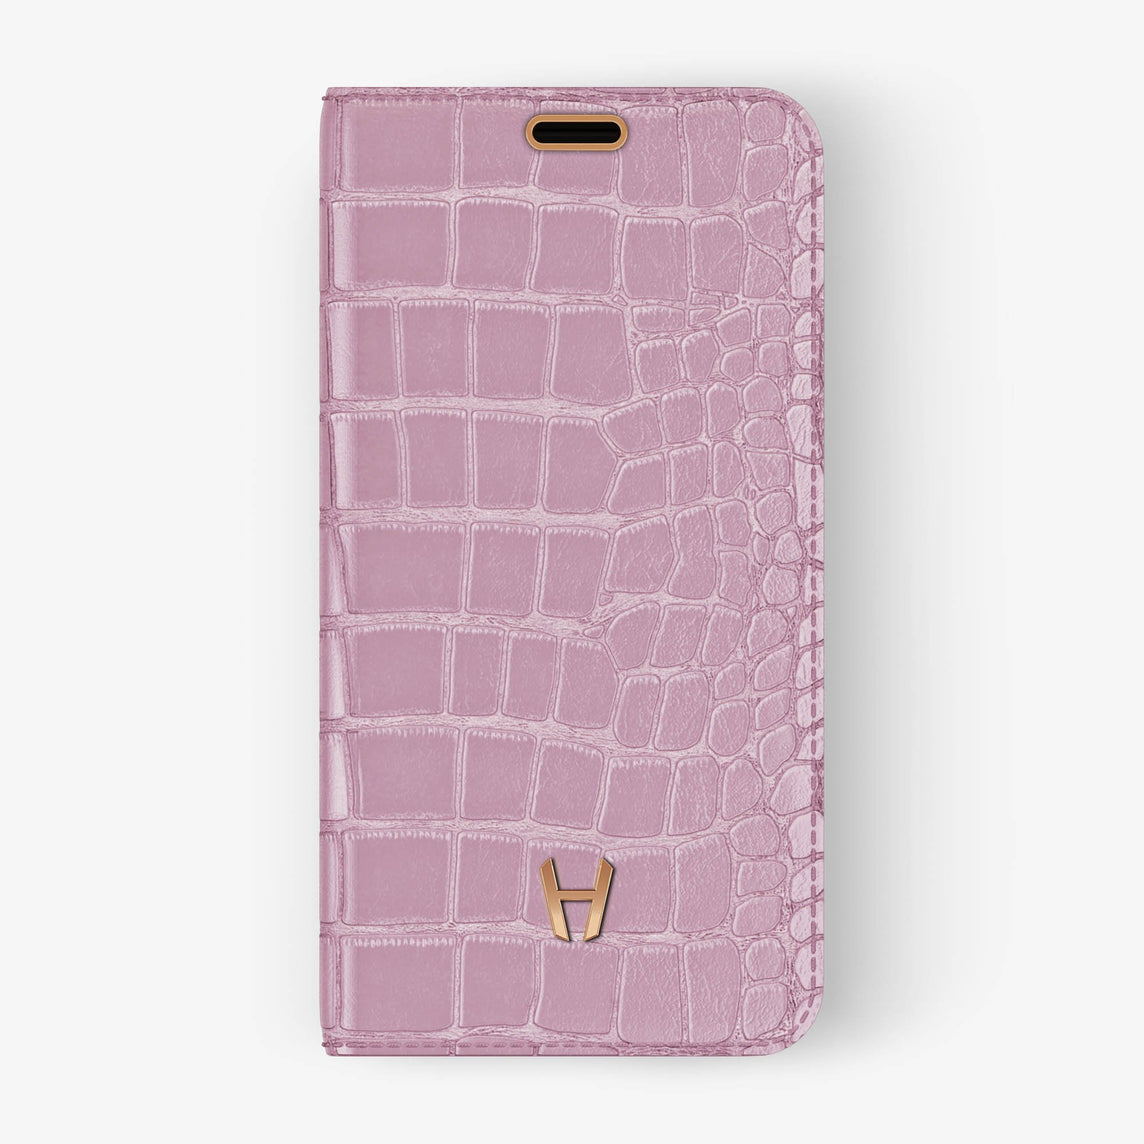 Alligator [iPhone Folio Case] [model:iphone-xr-case] [colour:pink] [finishing:rose-gold]